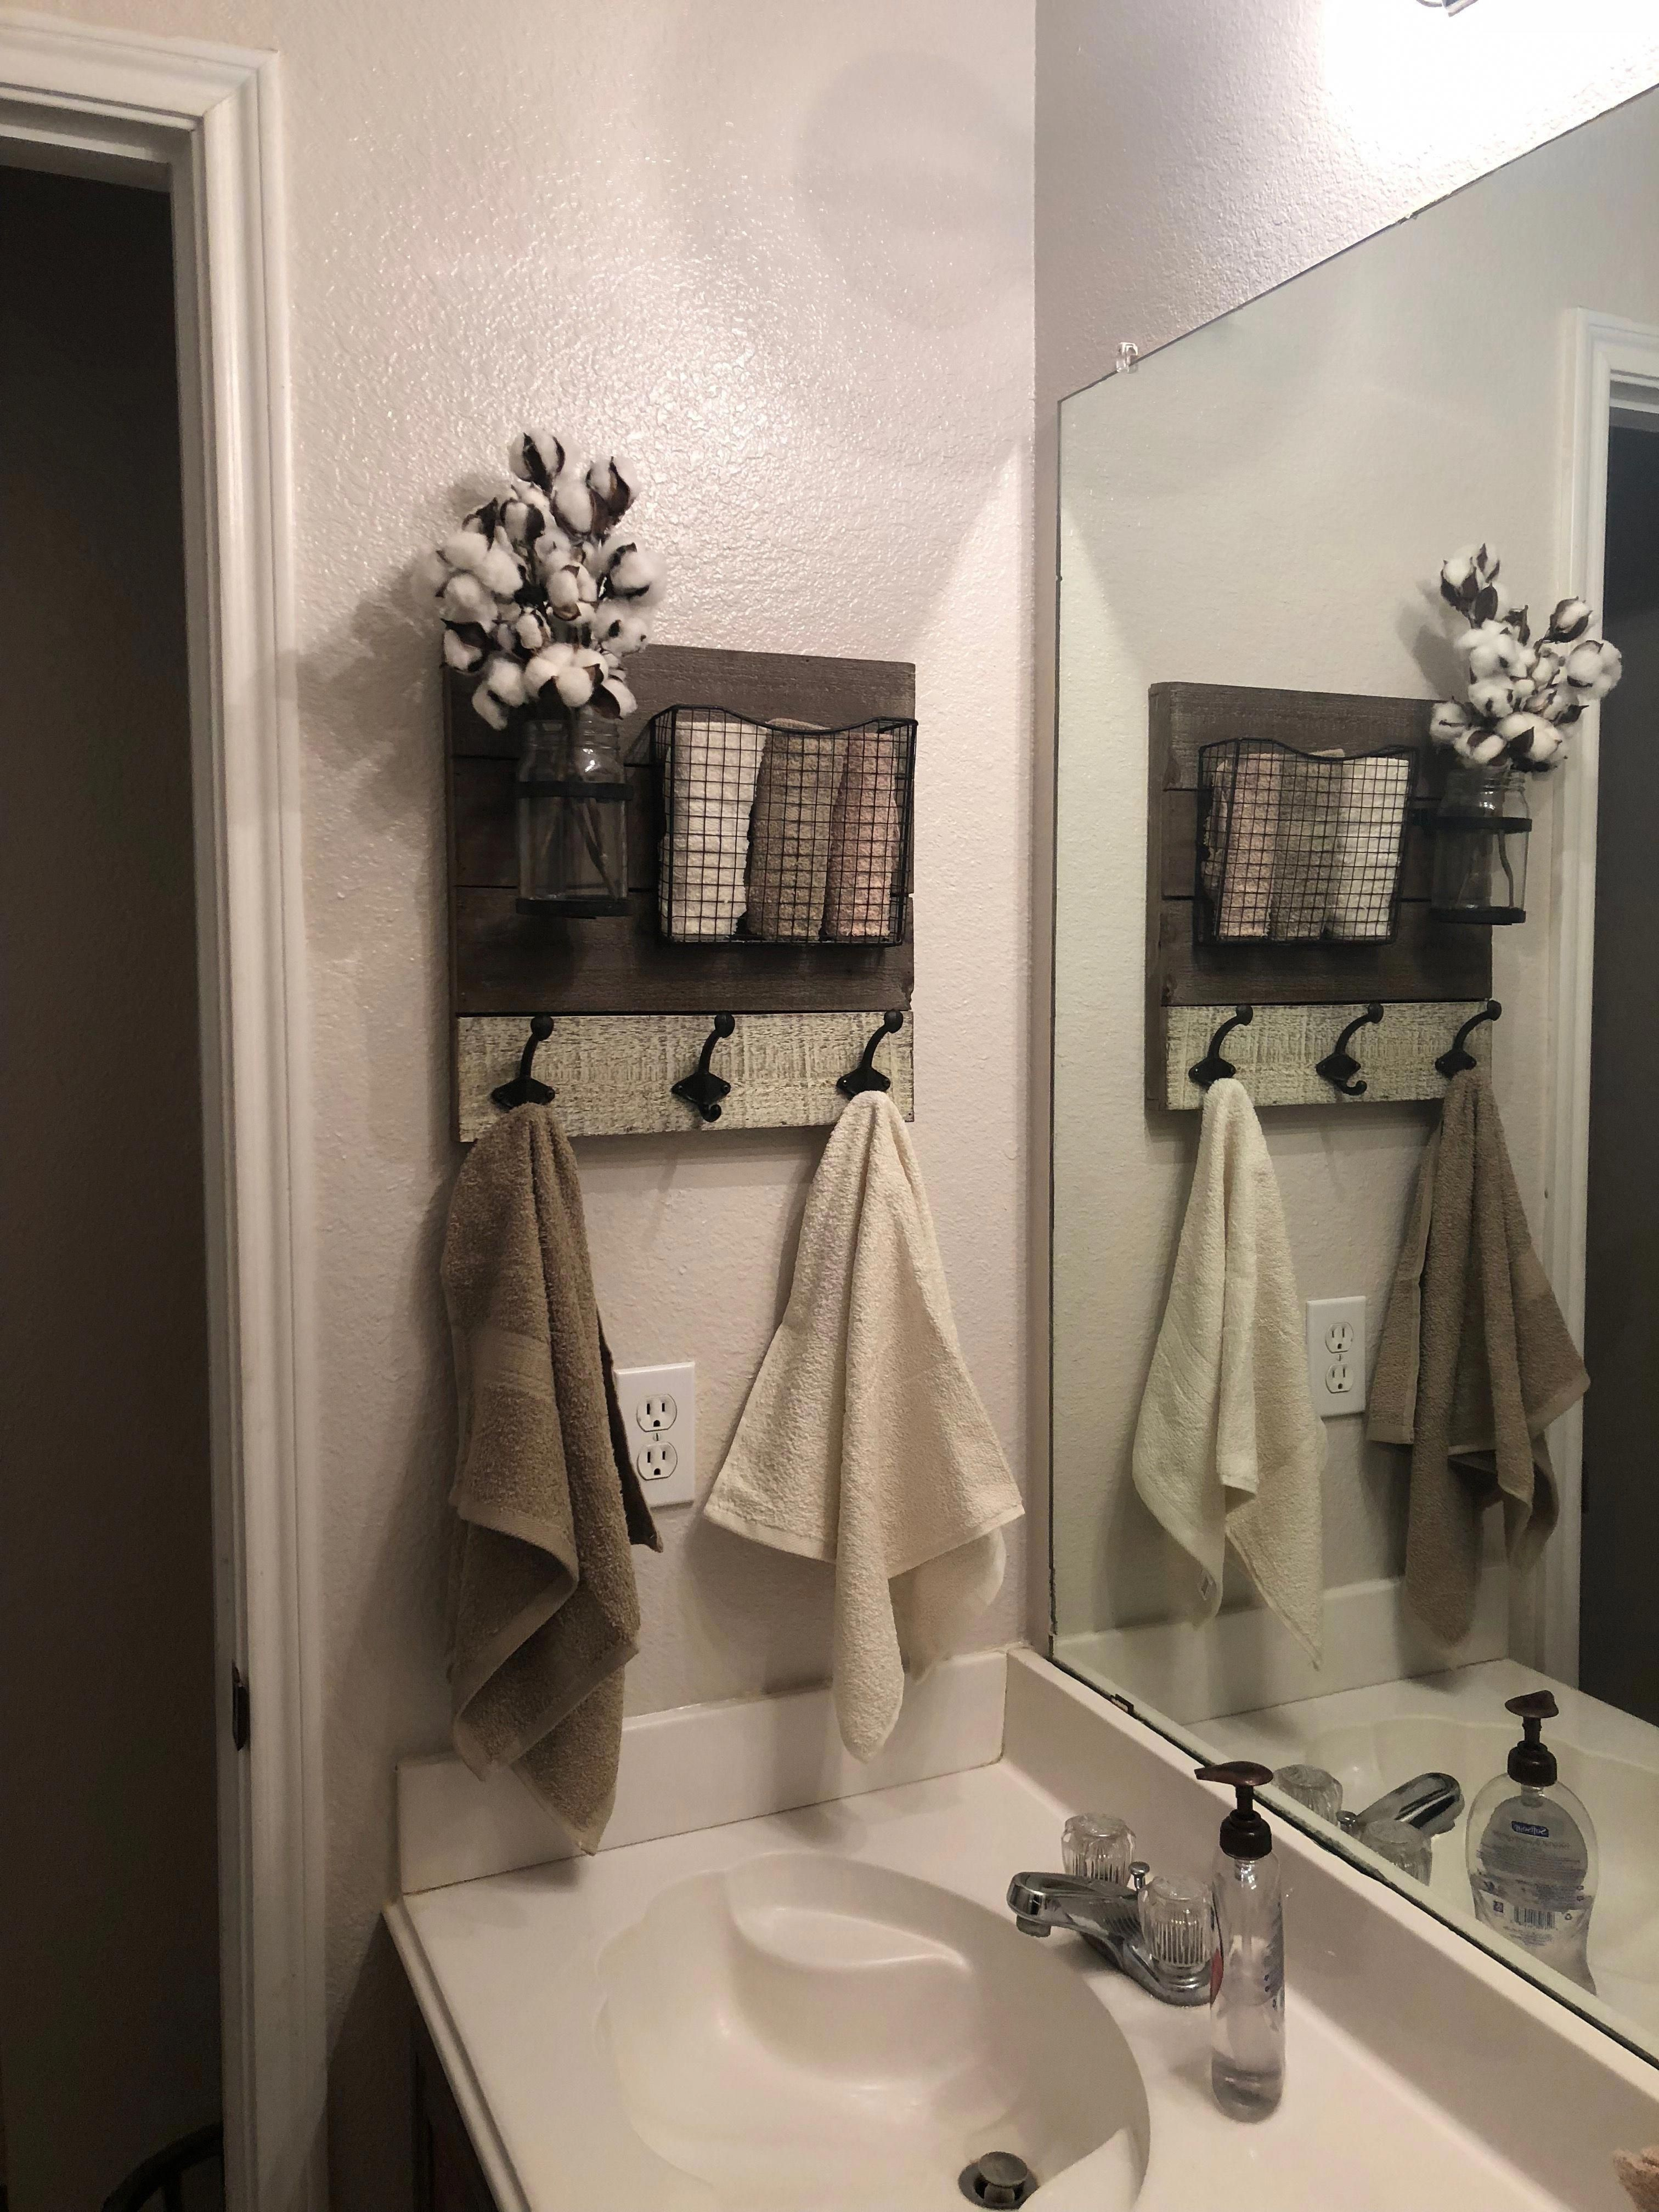 Are You Interested In Bathroom Decor Wall Then Read On To Find